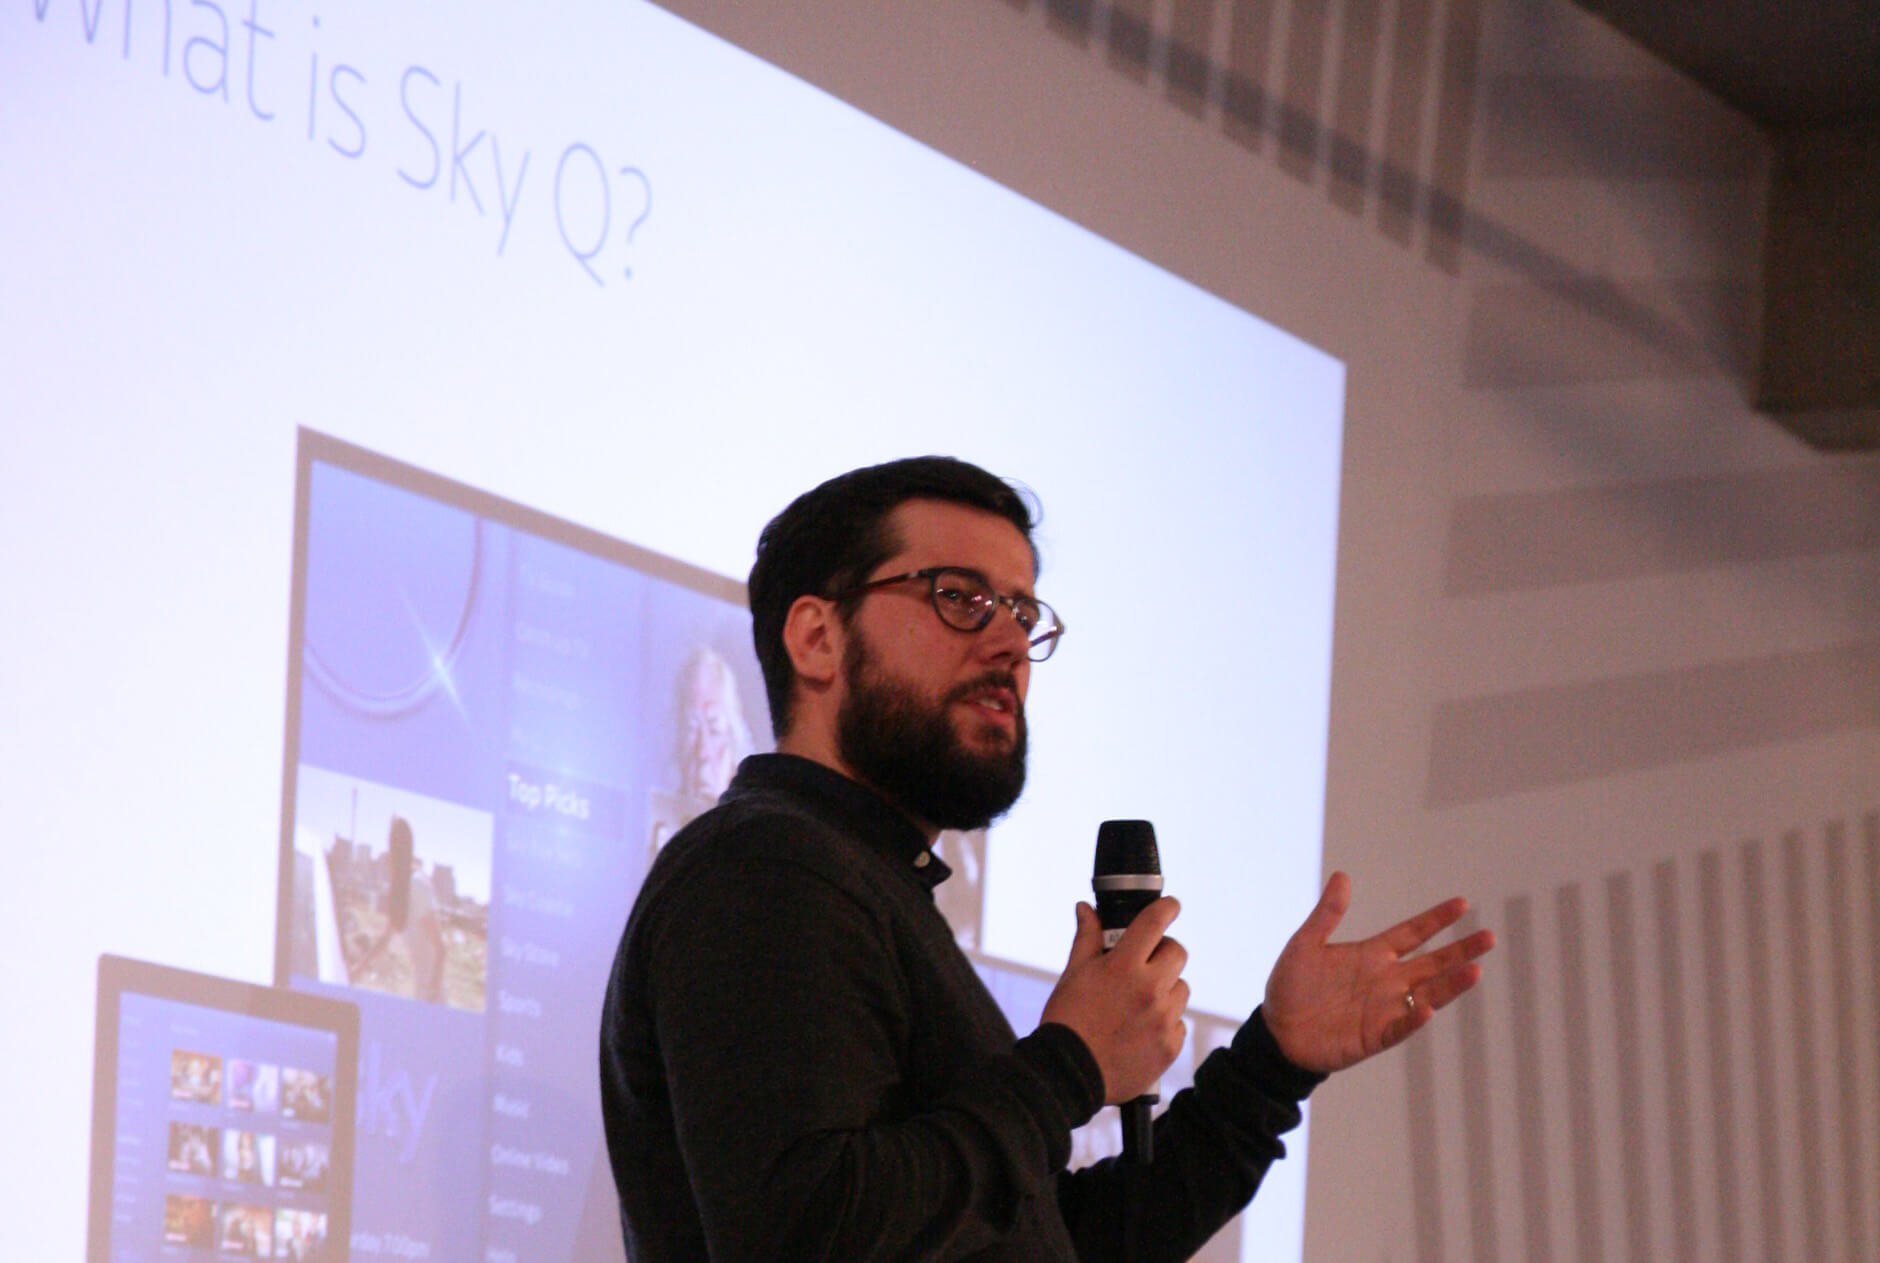 An Interview with Jose Alves, Creative Director for Sky UK